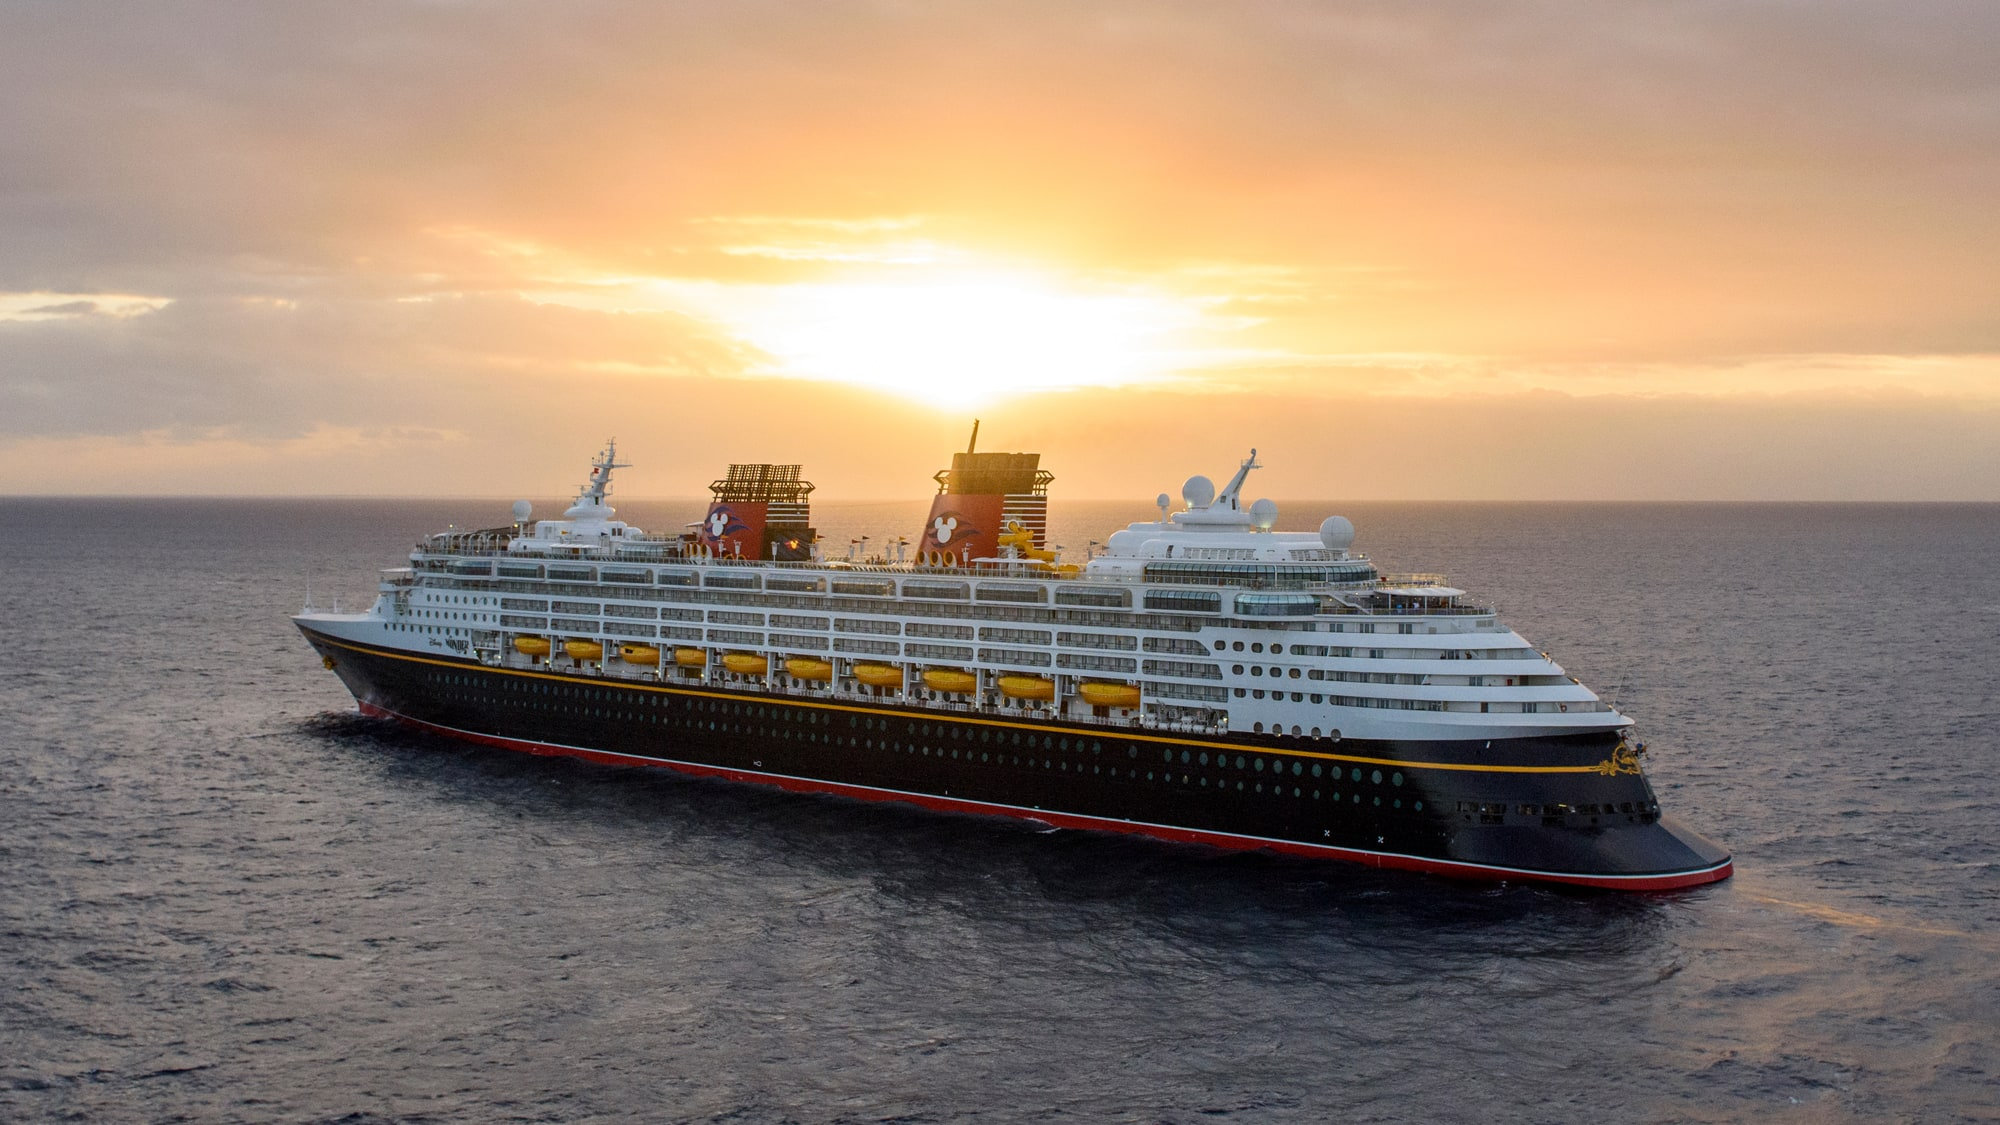 A Disney Cruise Line ship sailing in open waters at sunset